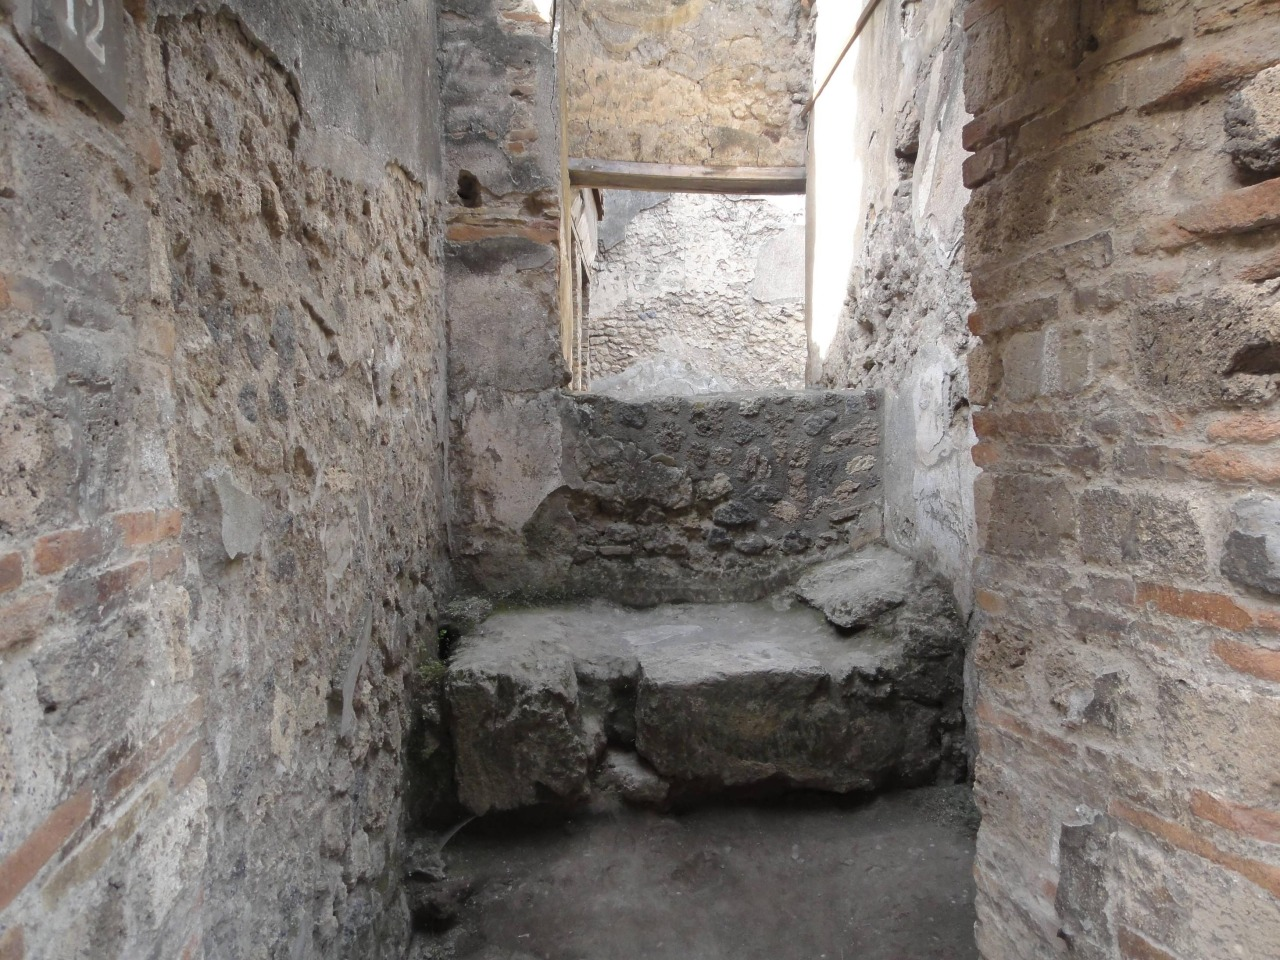 Carved stone bed in Roman brothel (Lupanar) in Pompeii, 79 AD